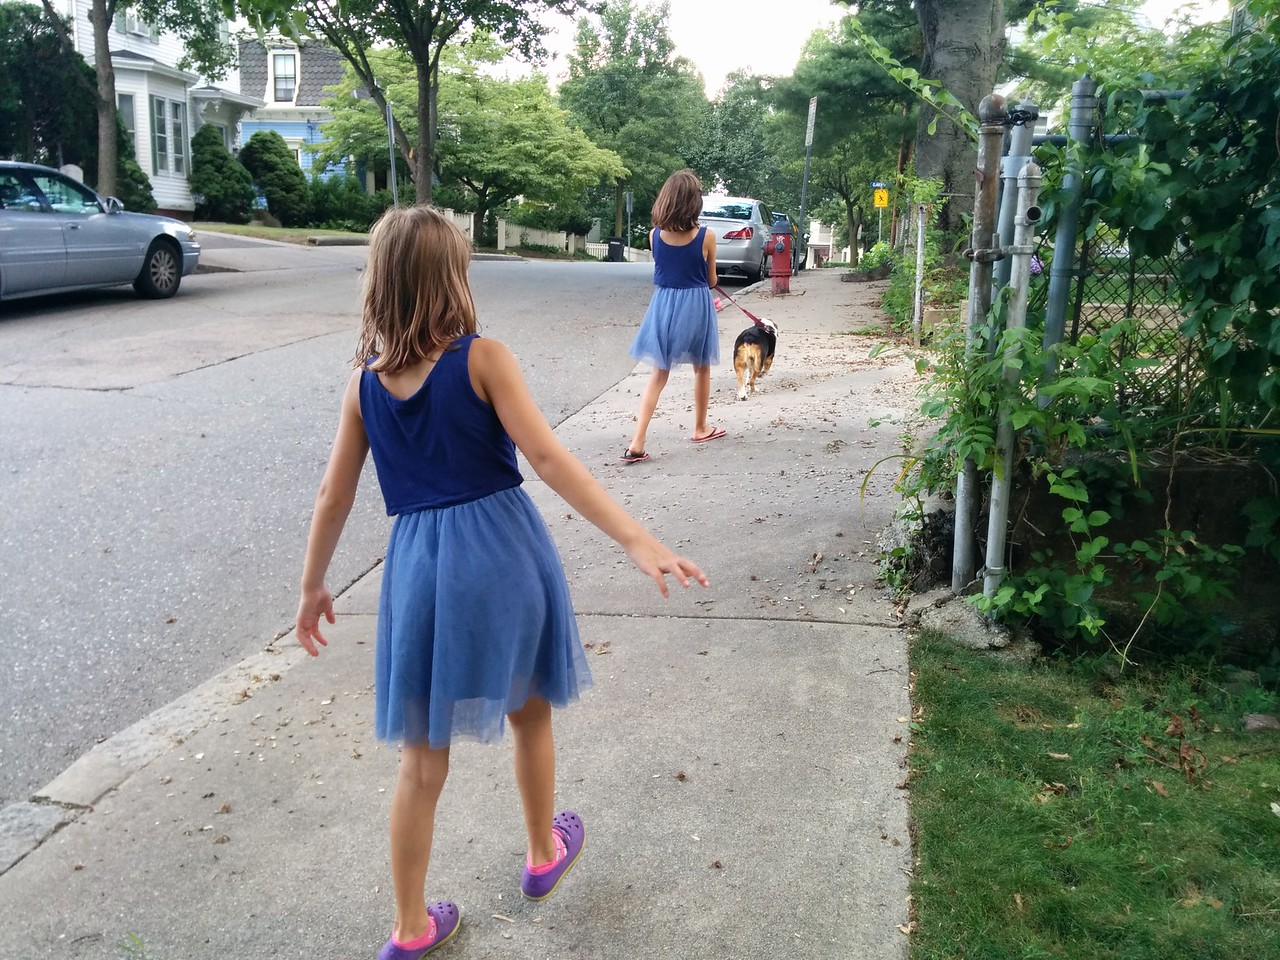 Guen walks the dog while Anya carefully keeps her distance.